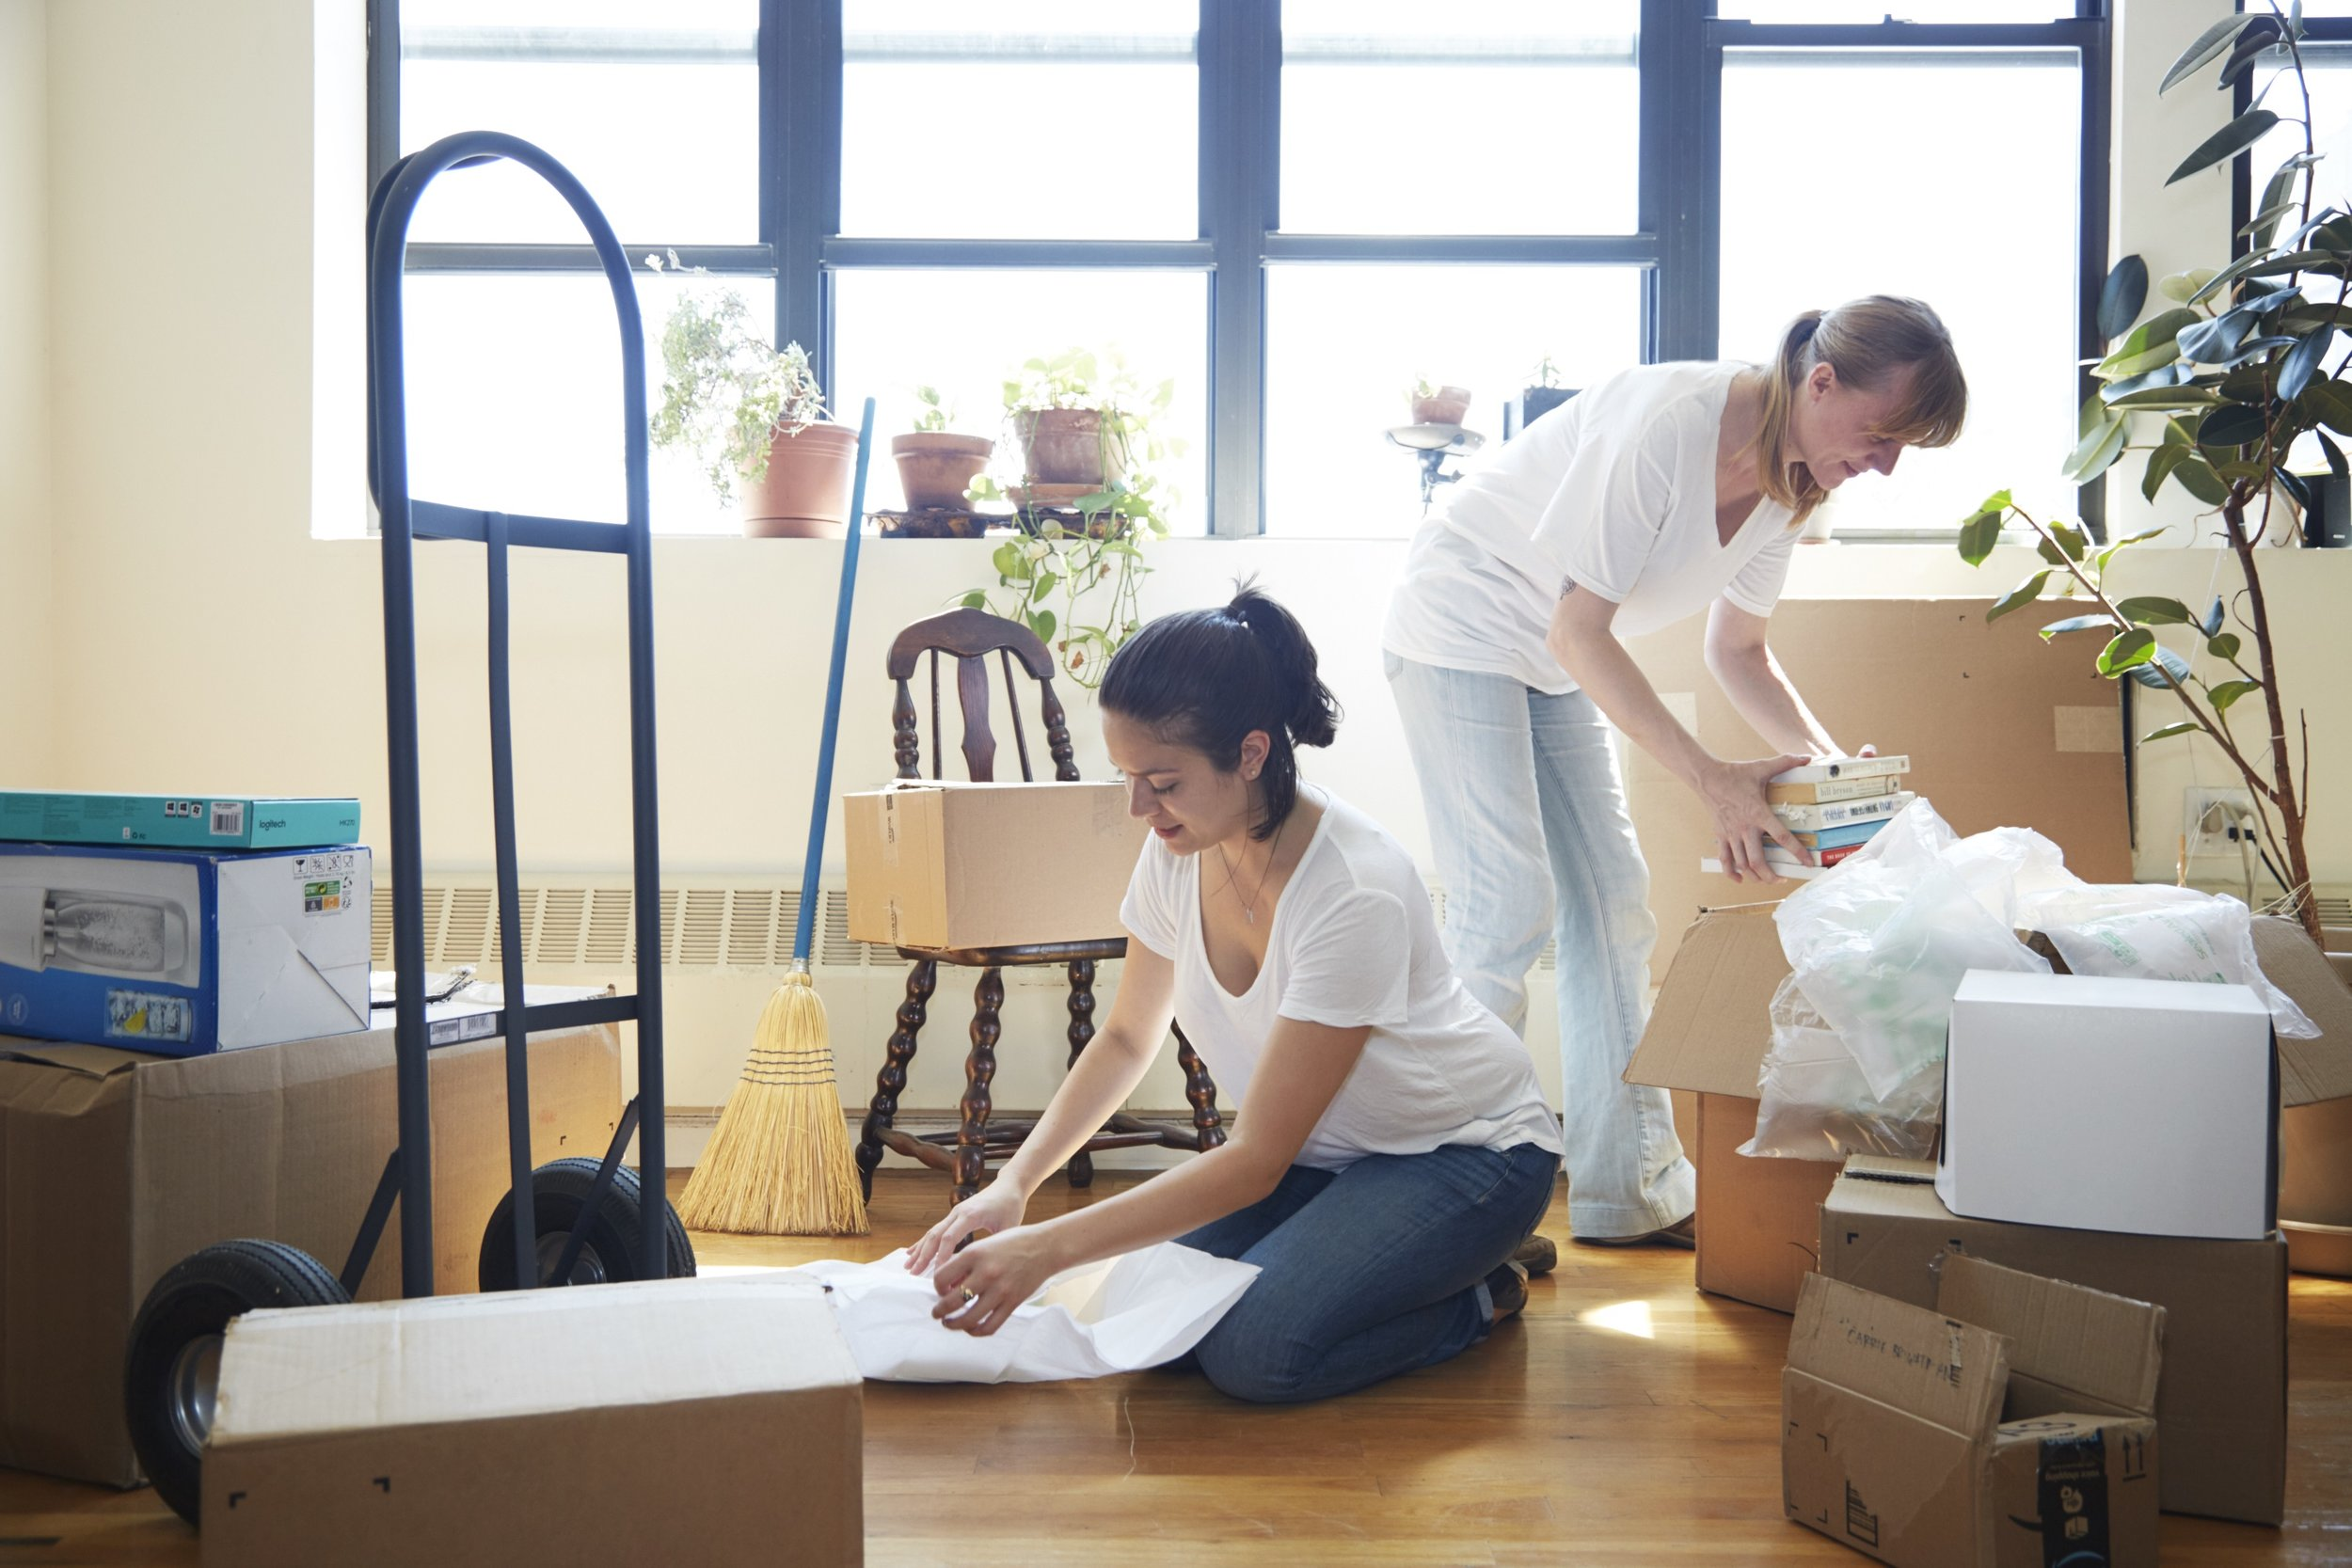 Move Management - Need an extra hand or two (or six)? deVivre Concierge can handle your move from start to finish so that you can get perfectly settled without lifting a finger.